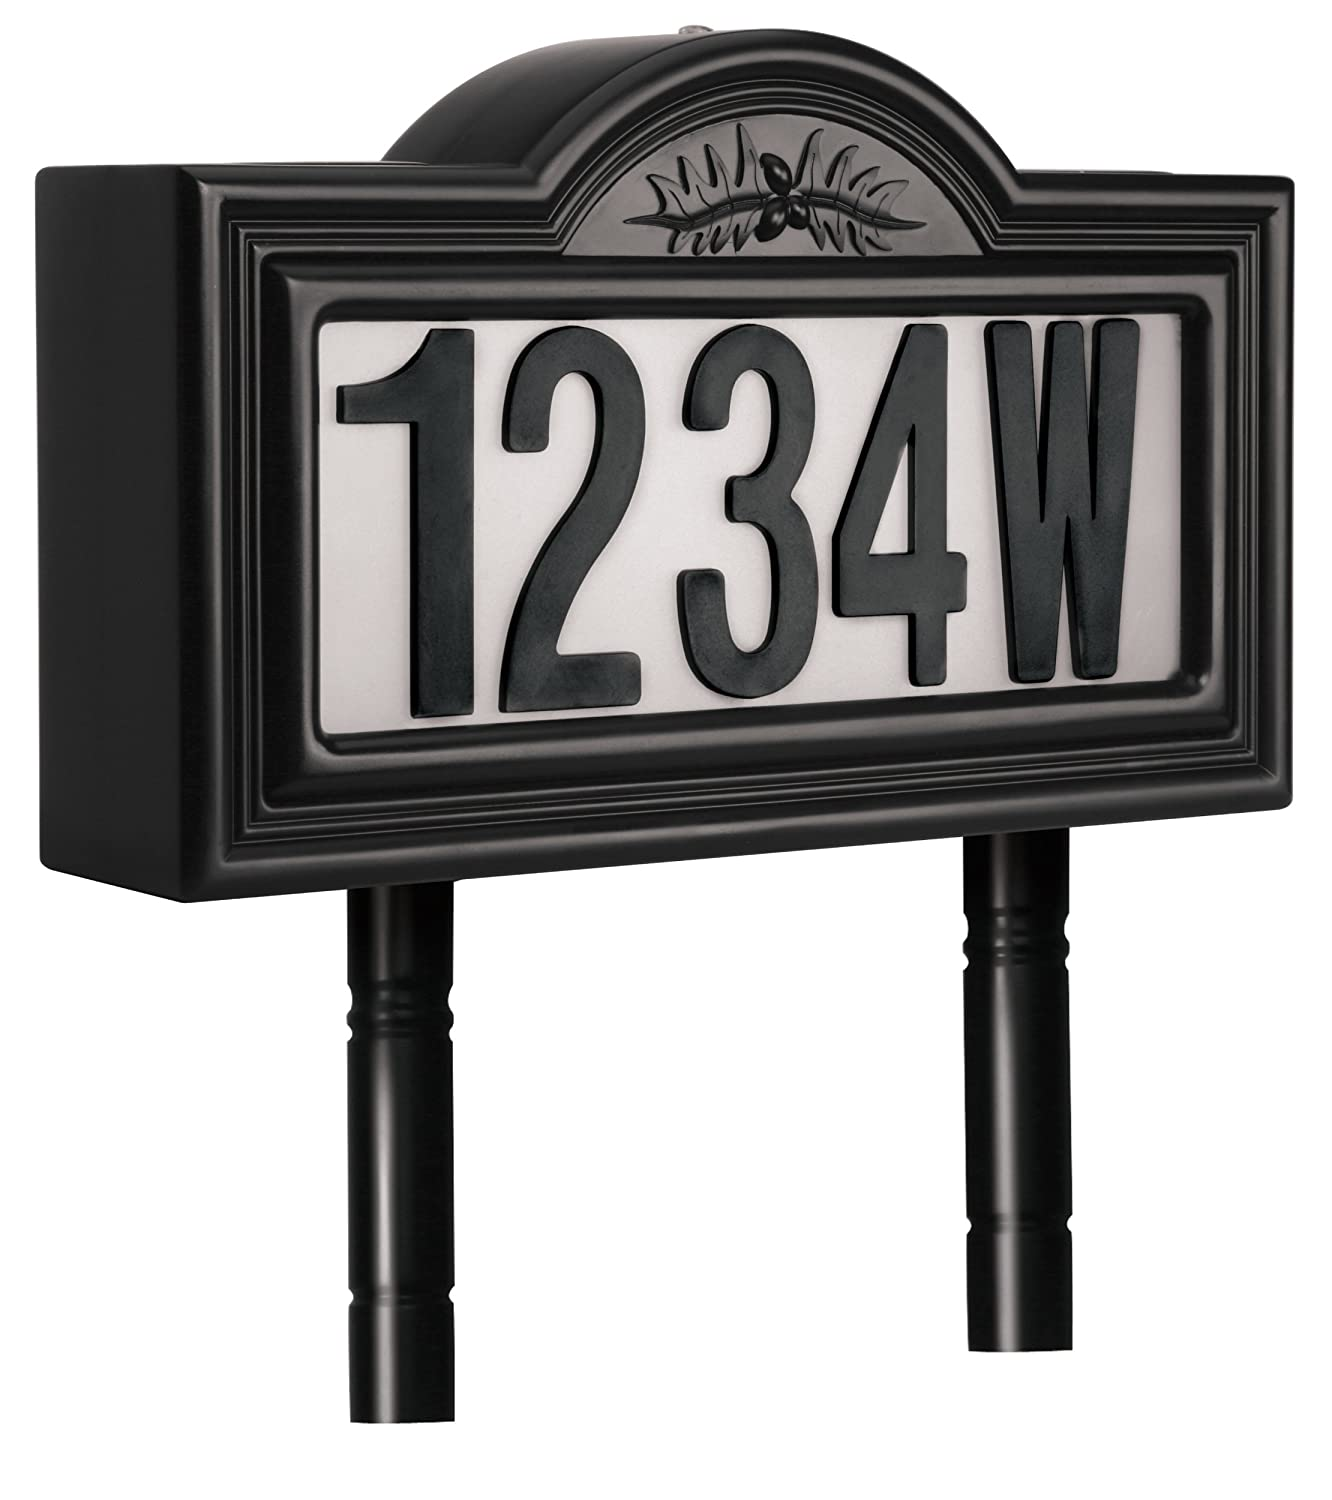 Lighted Address Sign Part - 31: Pine Top 508-0011 Plastic Solar-Powered LED Lighted Address Sign, Black -  Led Household Light Bulbs - Amazon.com